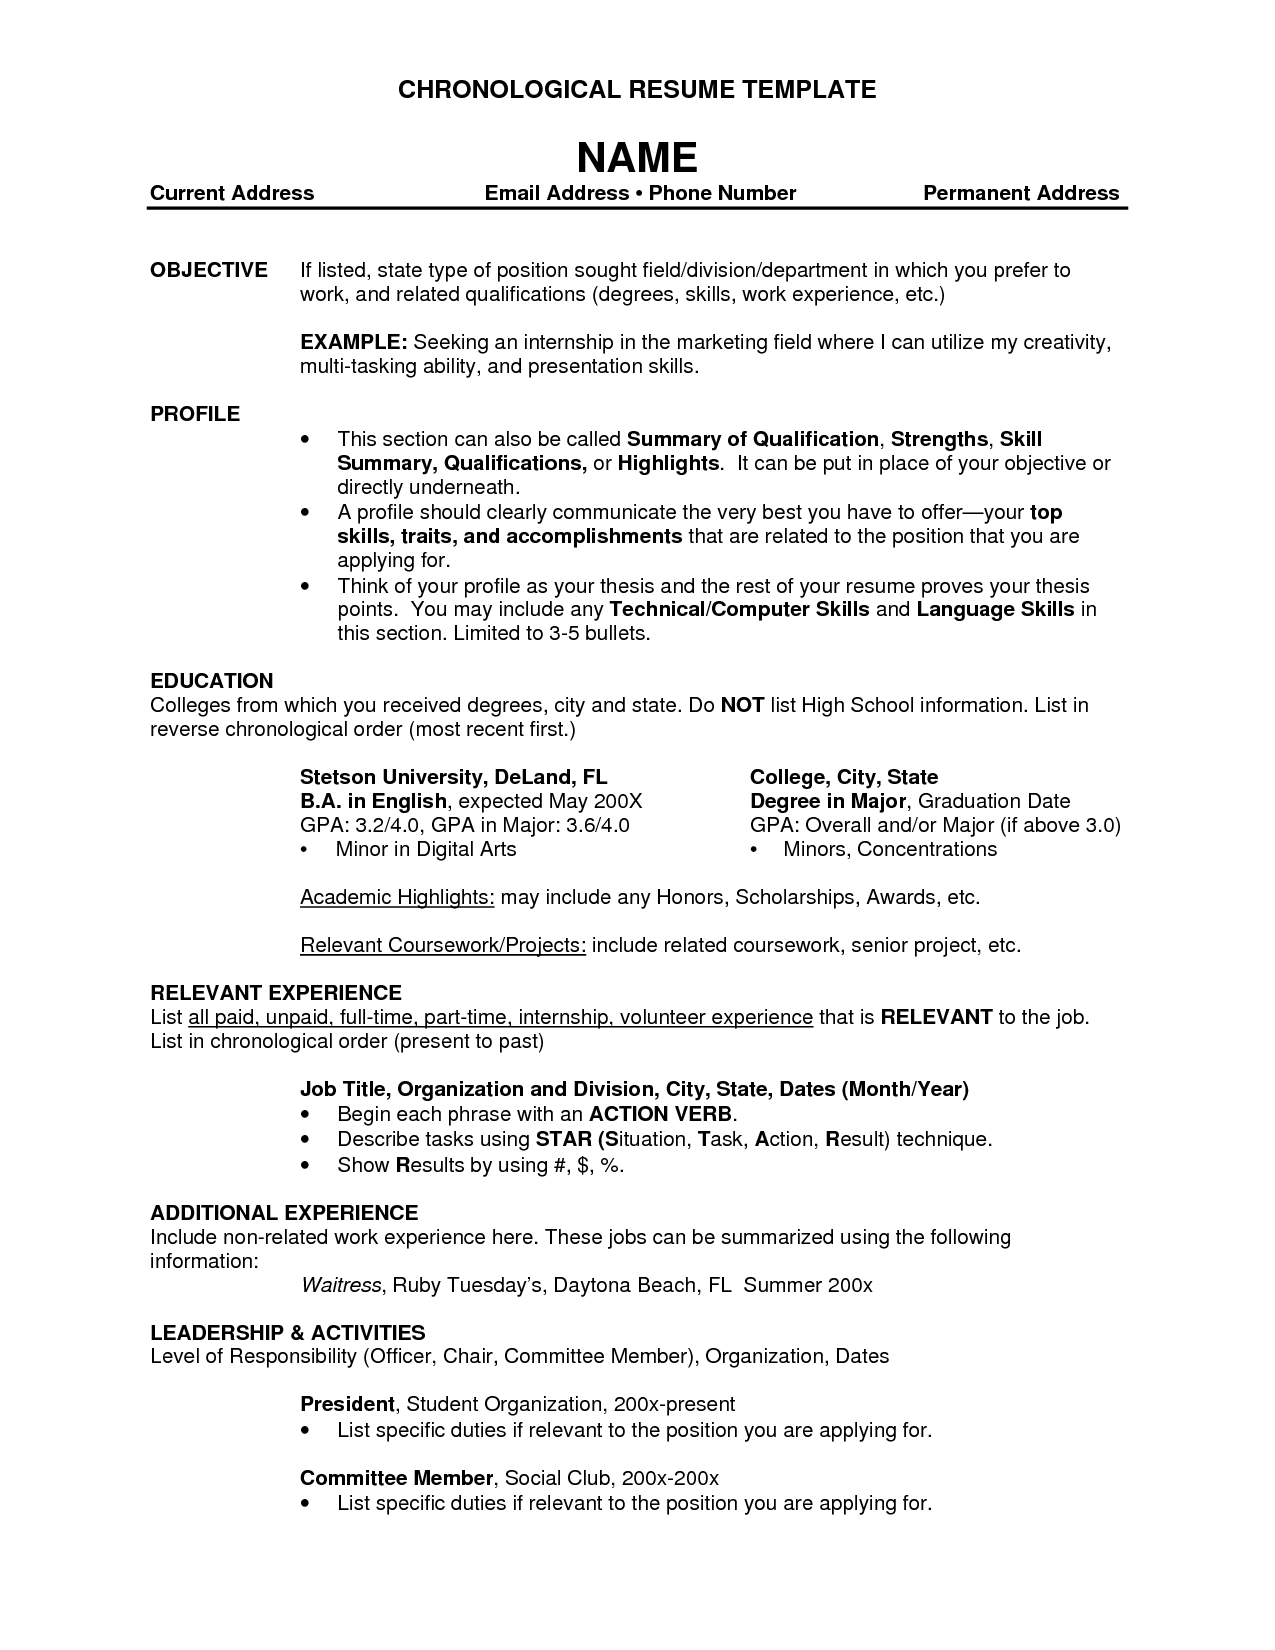 Job Resume Topics Pega Architect Sample Nuclear Power Best